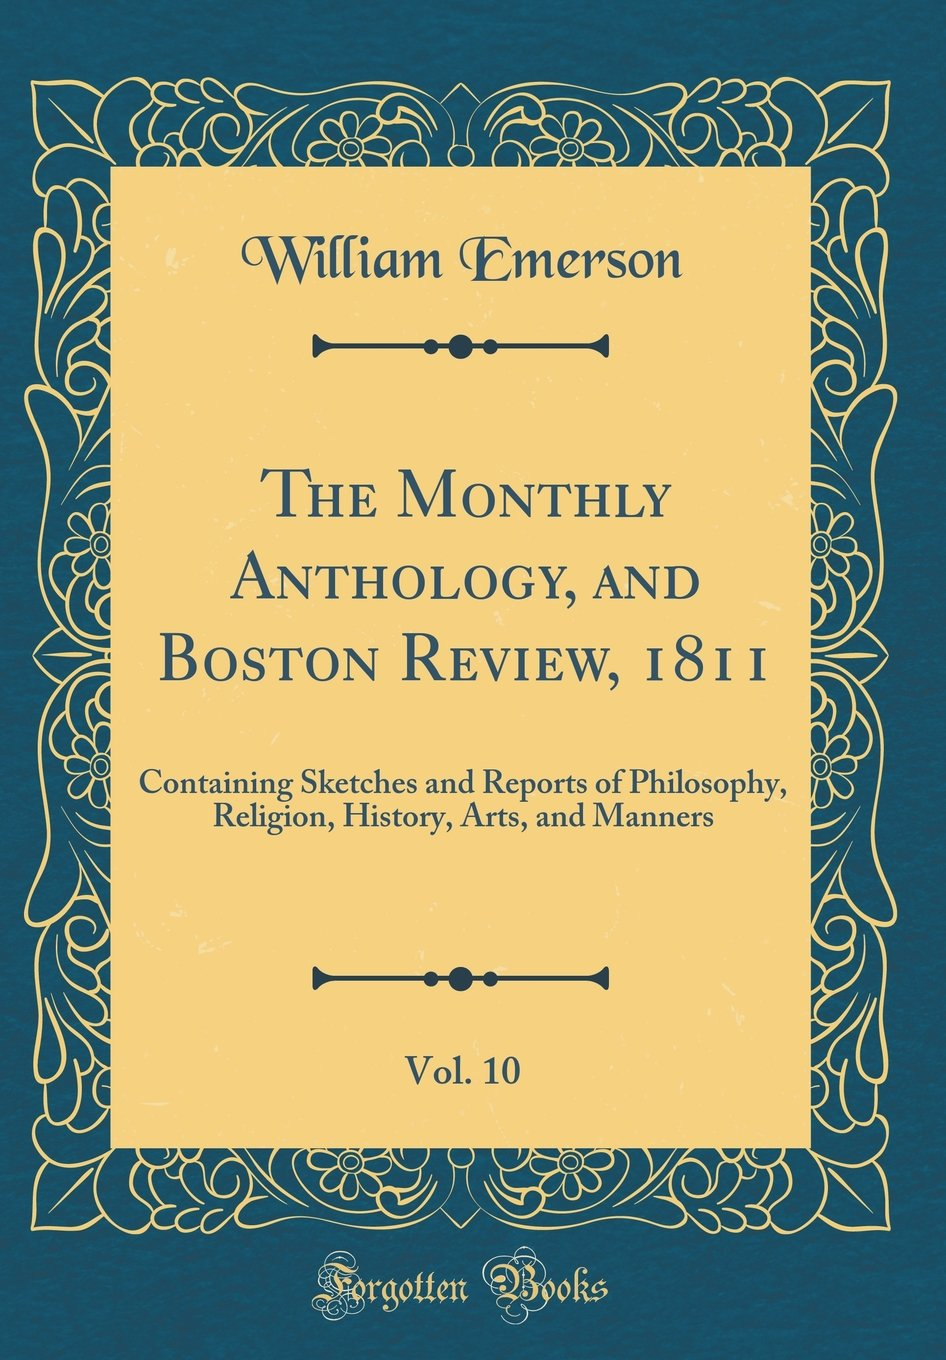 The Monthly Anthology, and Boston Review, 1811, Vol. 10: Containing Sketches and Reports of Philosophy, Religion, History, Arts, and Manners (Classic Reprint) pdf